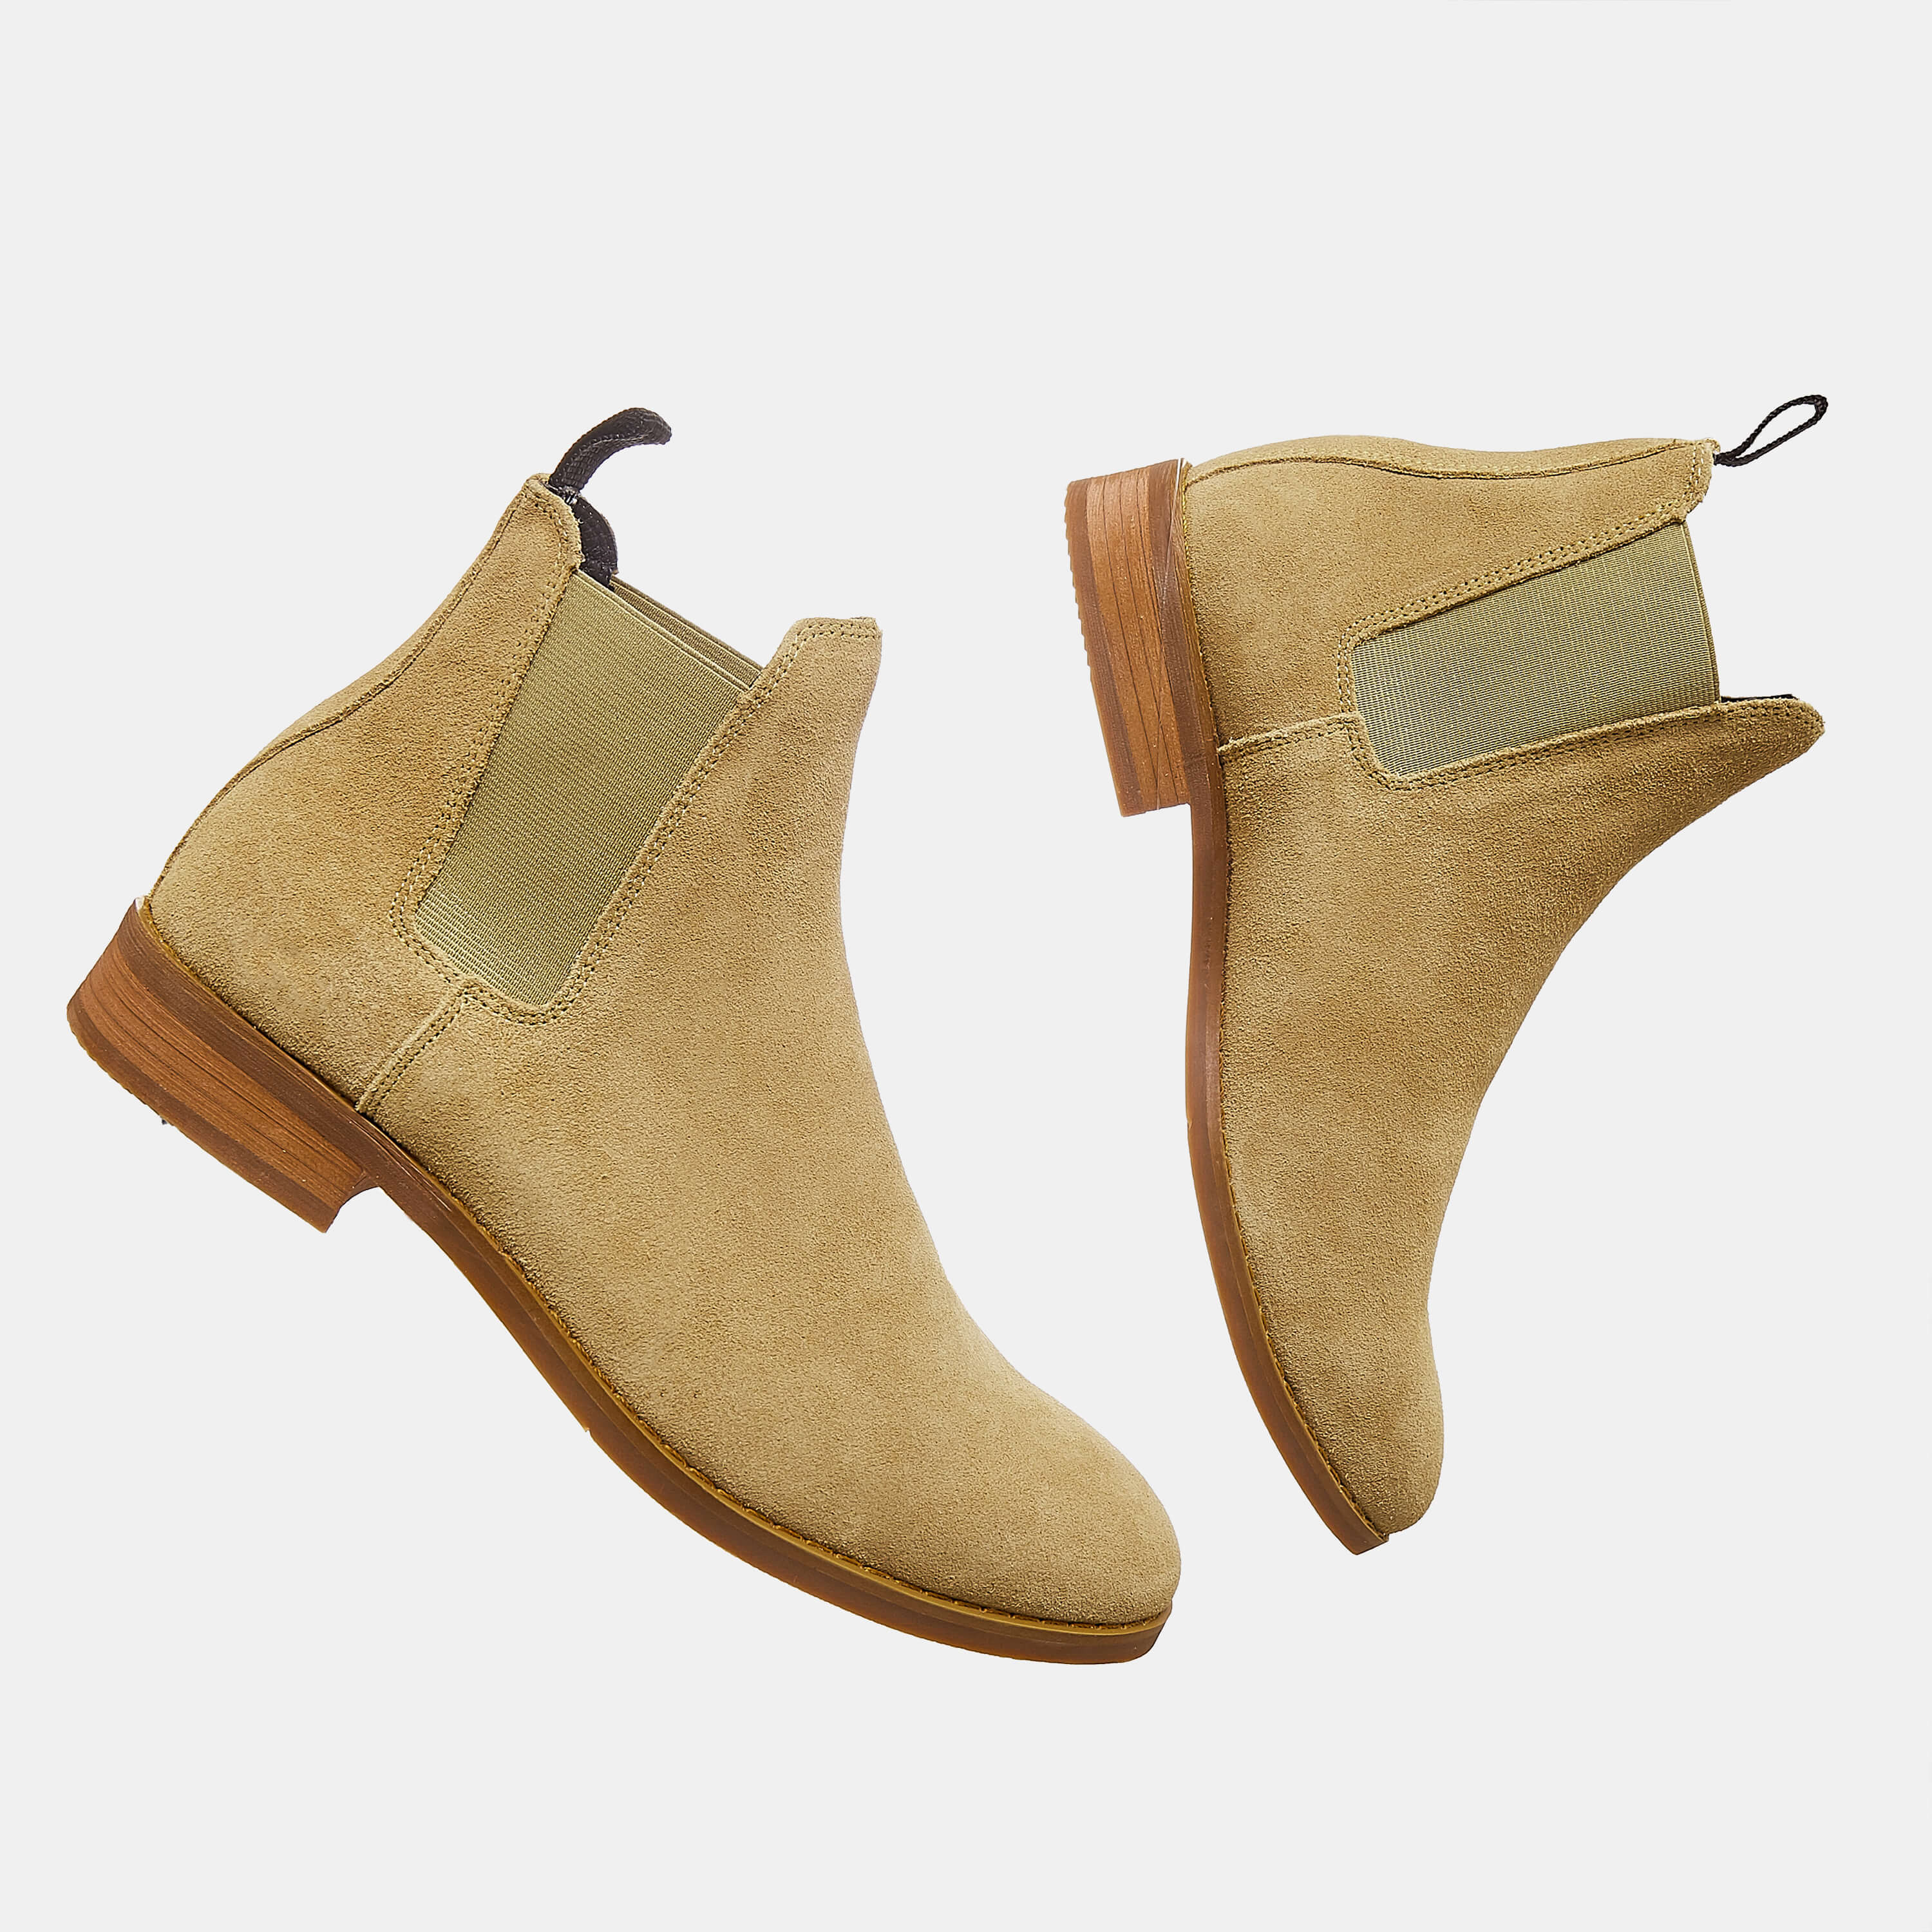 Suede Chelsea Boots In Tan Color Suede Chelsea Boots In Tan Color 4